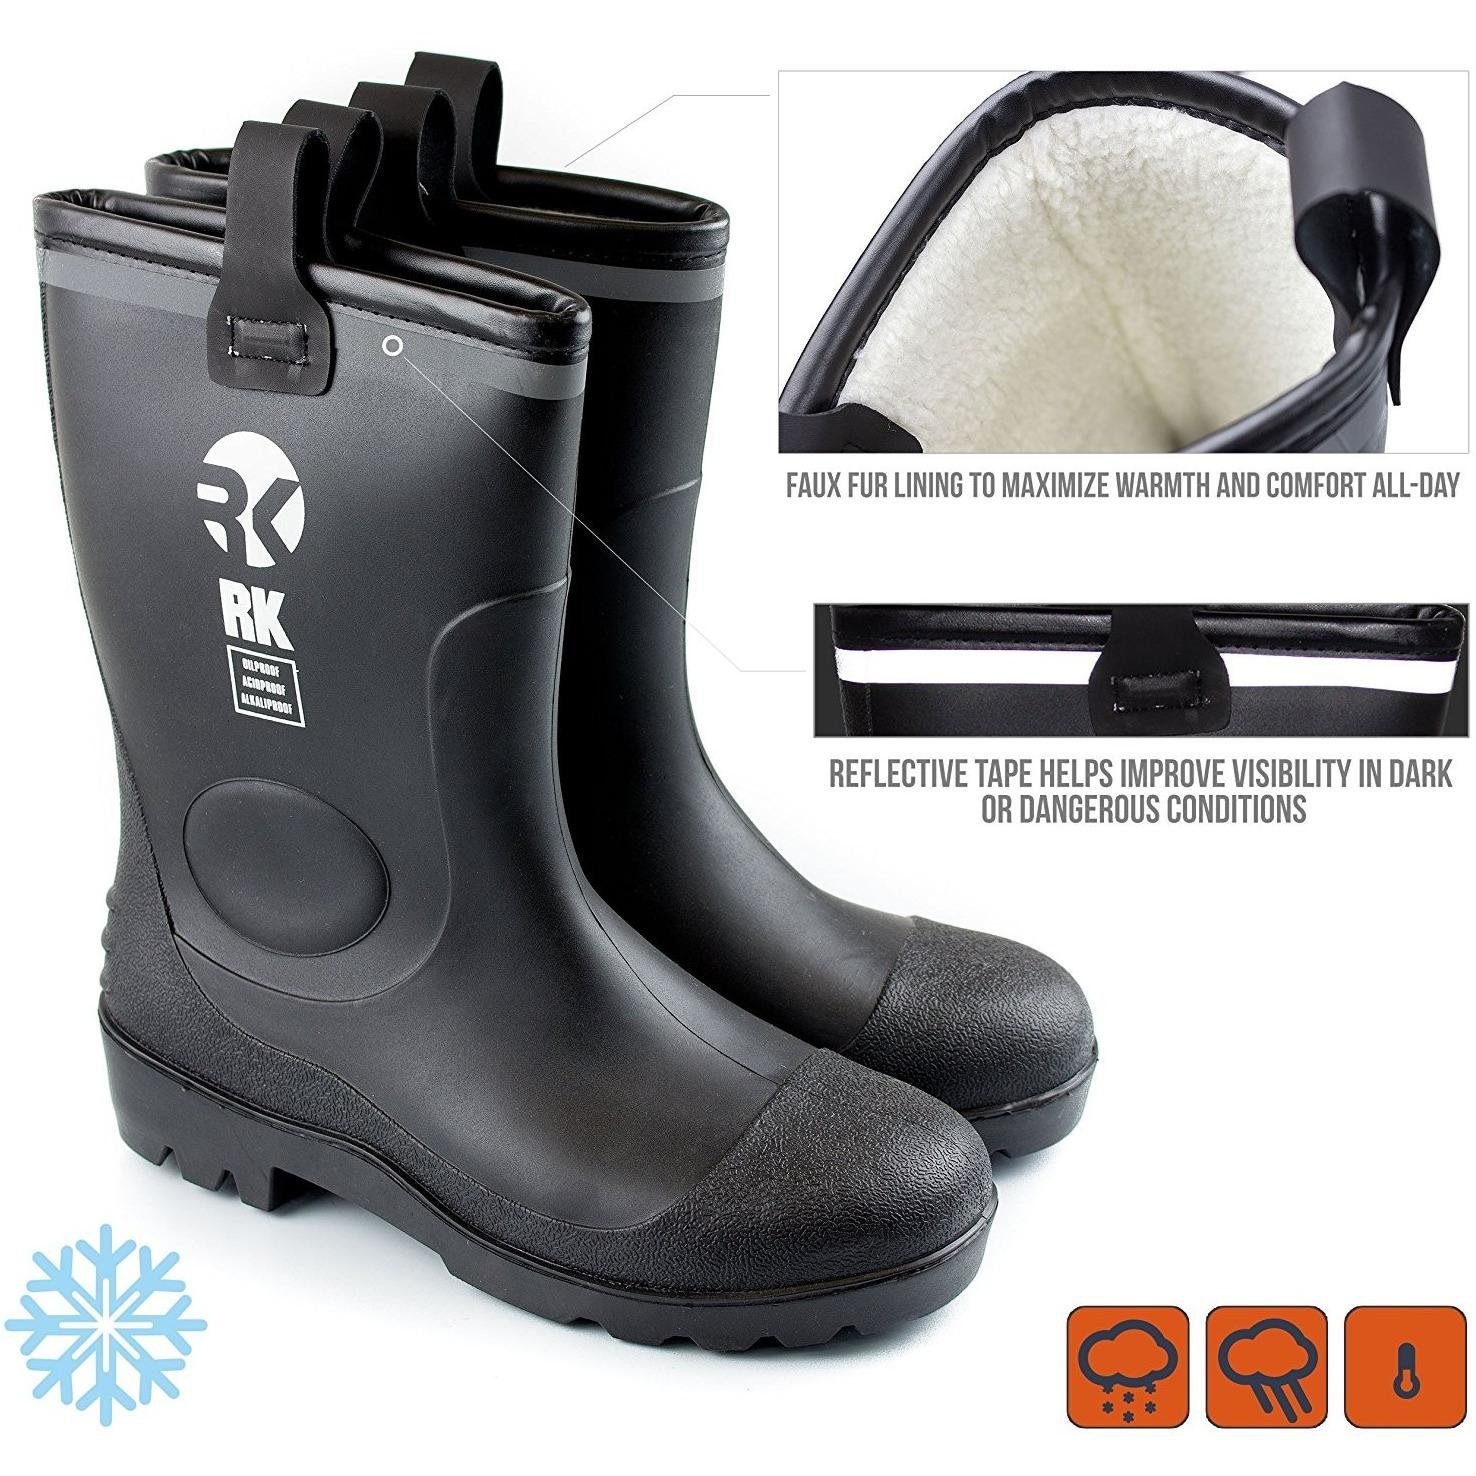 ead7316e4f9 RK Mens Insulated Waterproof Fur Interior Rubber Sole Winter Snow Cold  Weather Rain Boots